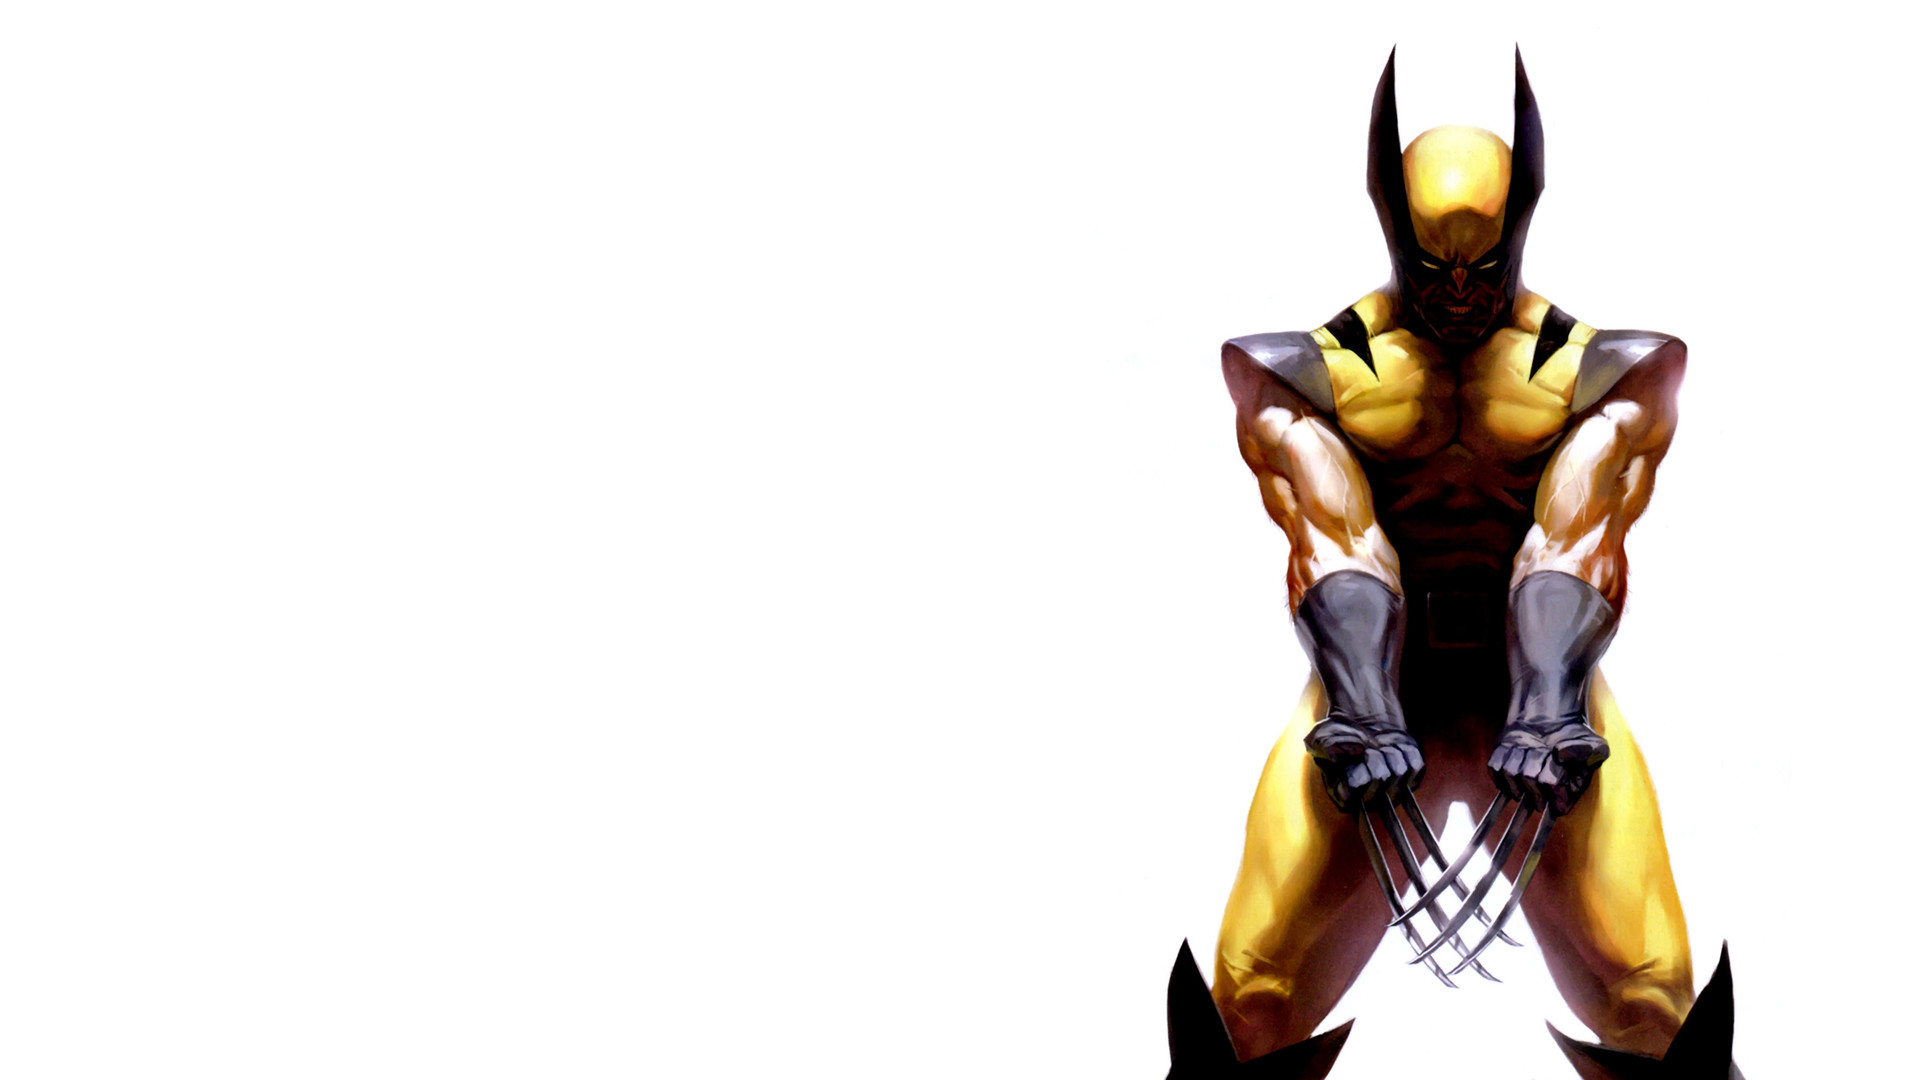 1920x1080 Wolverine HD Wallpapers for desktop download 1920×1200 Wolverine Pictures  Wallpapers (46 Wallpapers) | Adorable Wallpapers | Wallpapers | Pinterest  ...